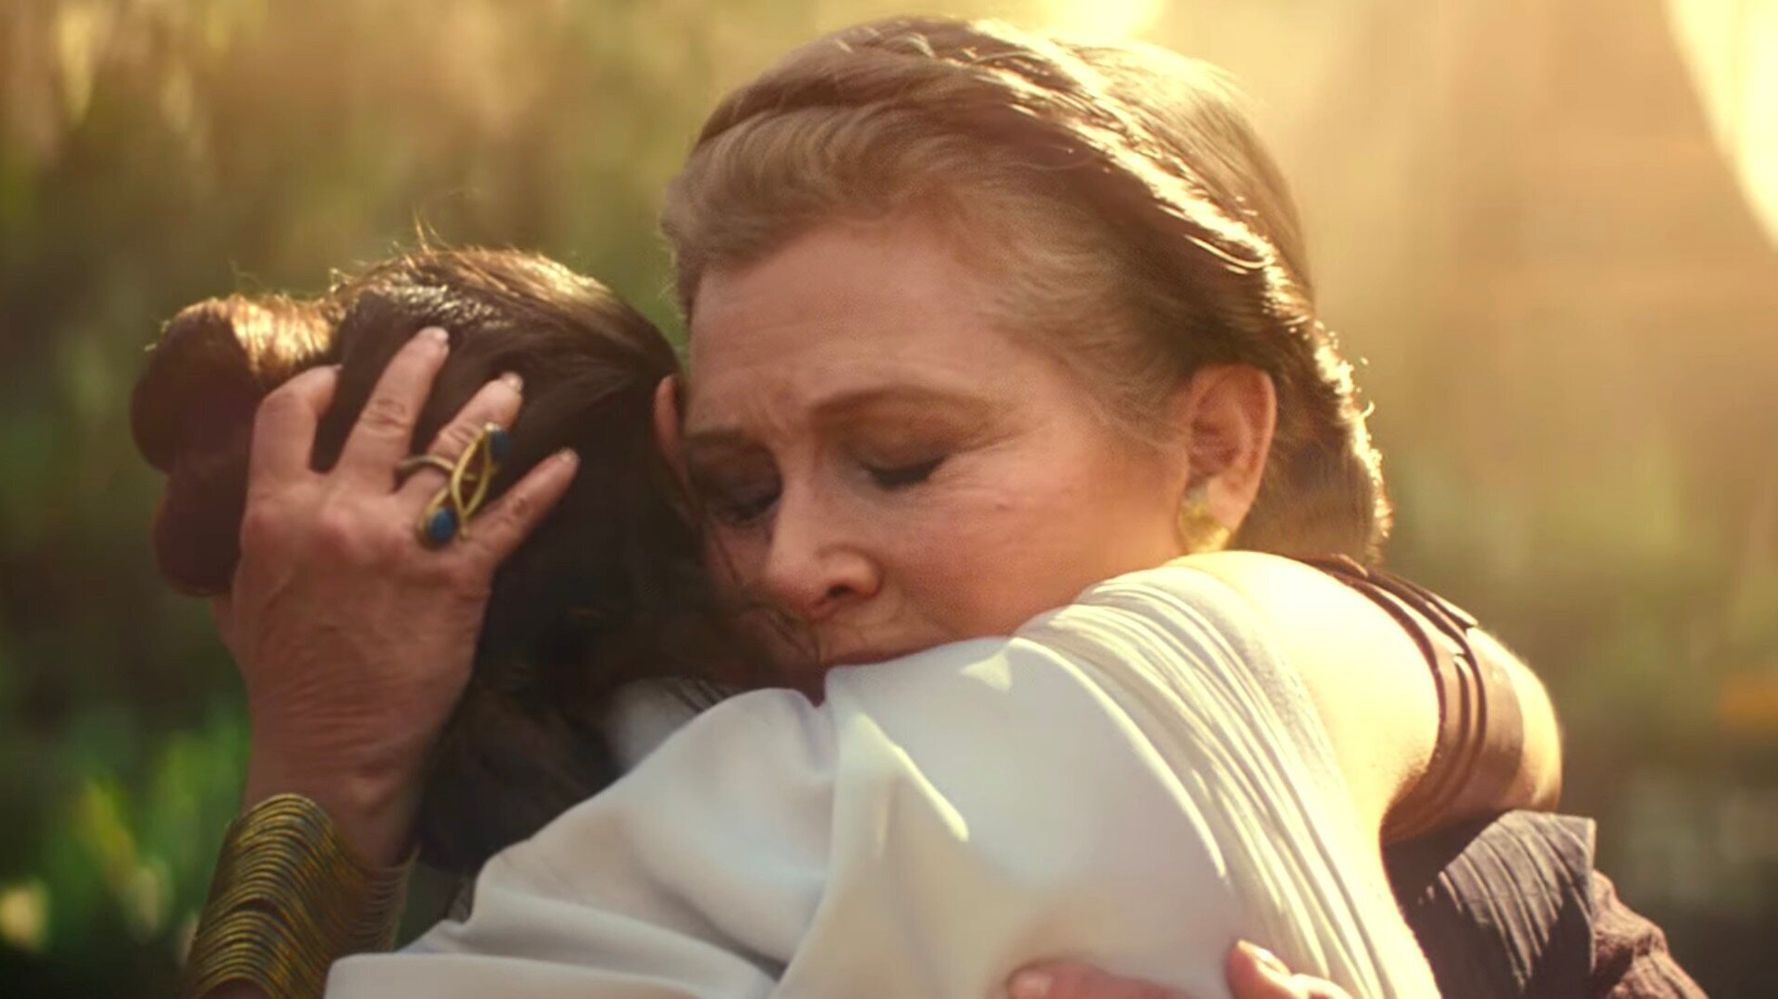 Westlake Legal Group 5daea50f210000ba1e34aa3a Leia Speaks 1 Word In Final 'Star Wars' Trailer And It Reduced Fans To Tears